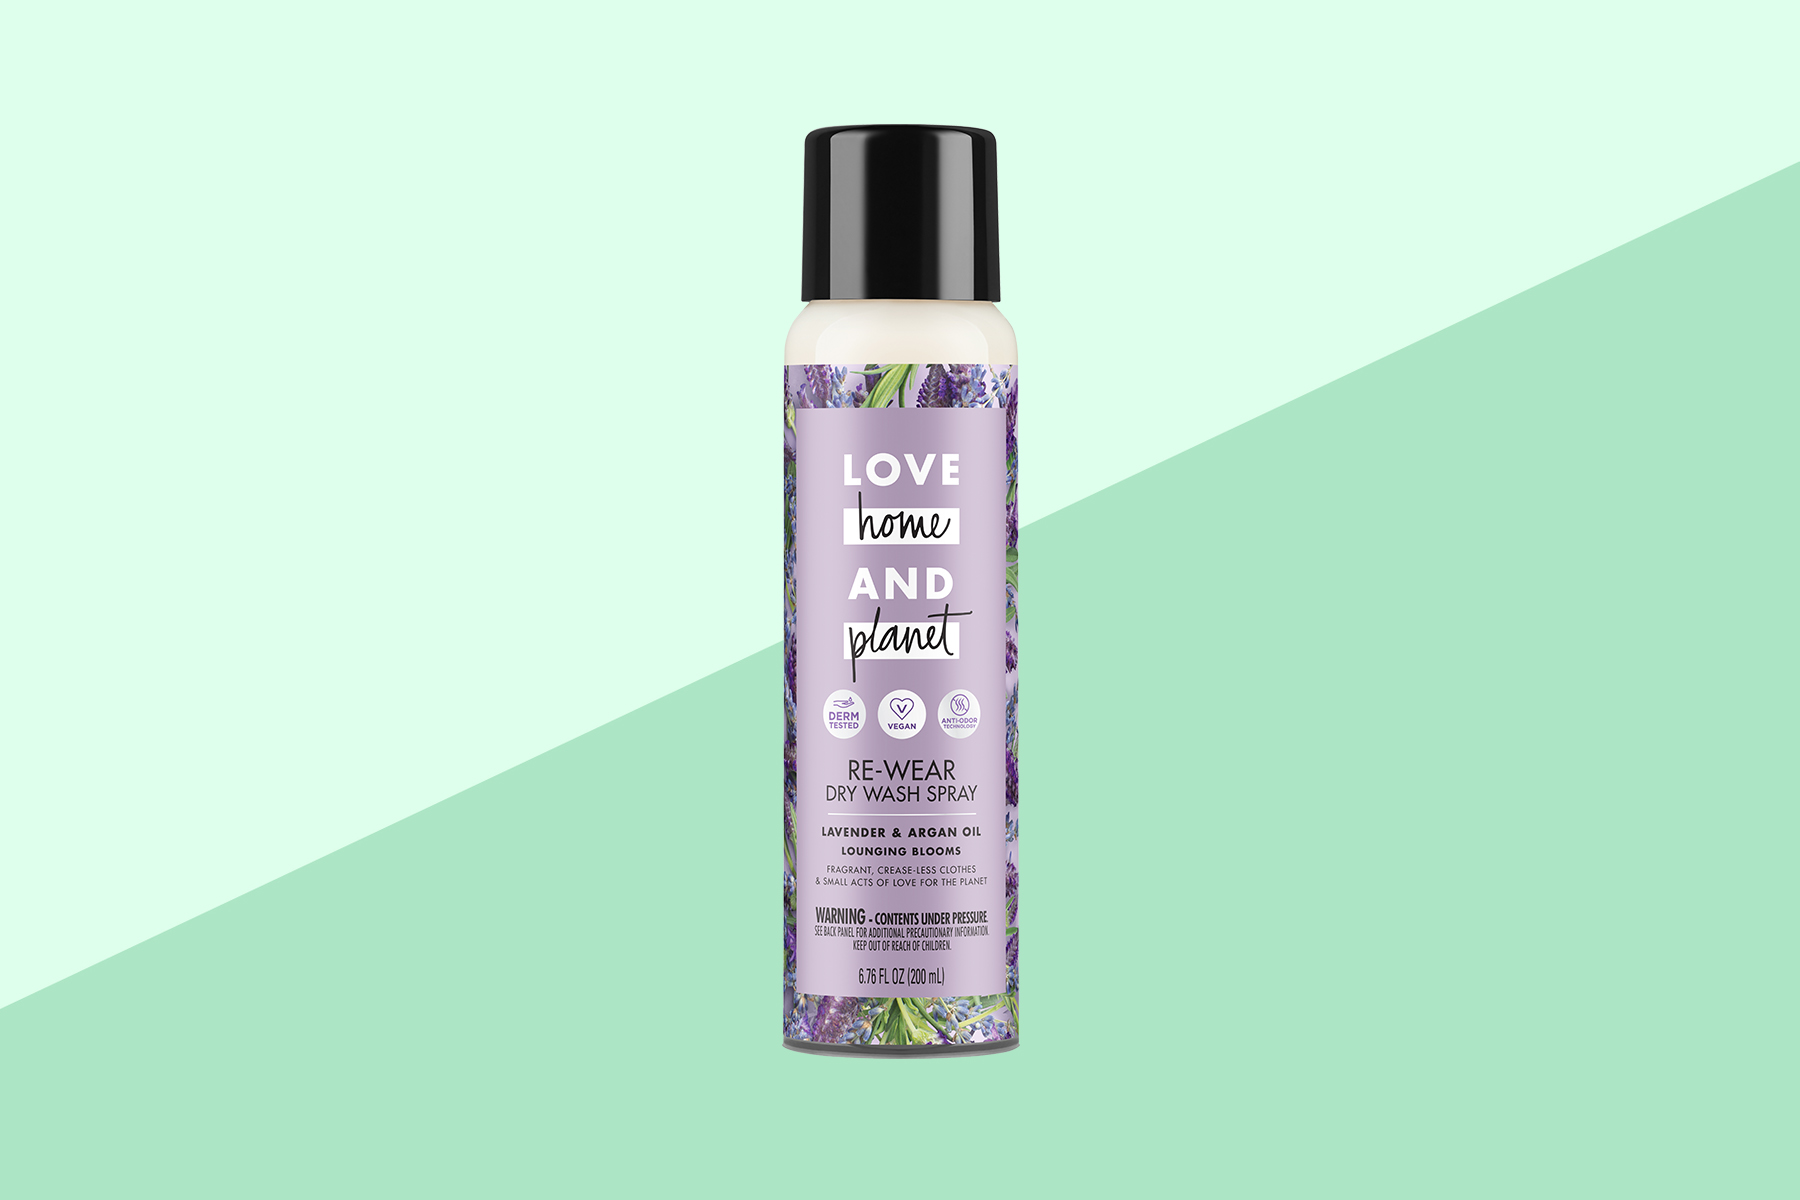 This Genius $7 Freshening Spray Is Like Dry Shampoo for Your Clothes